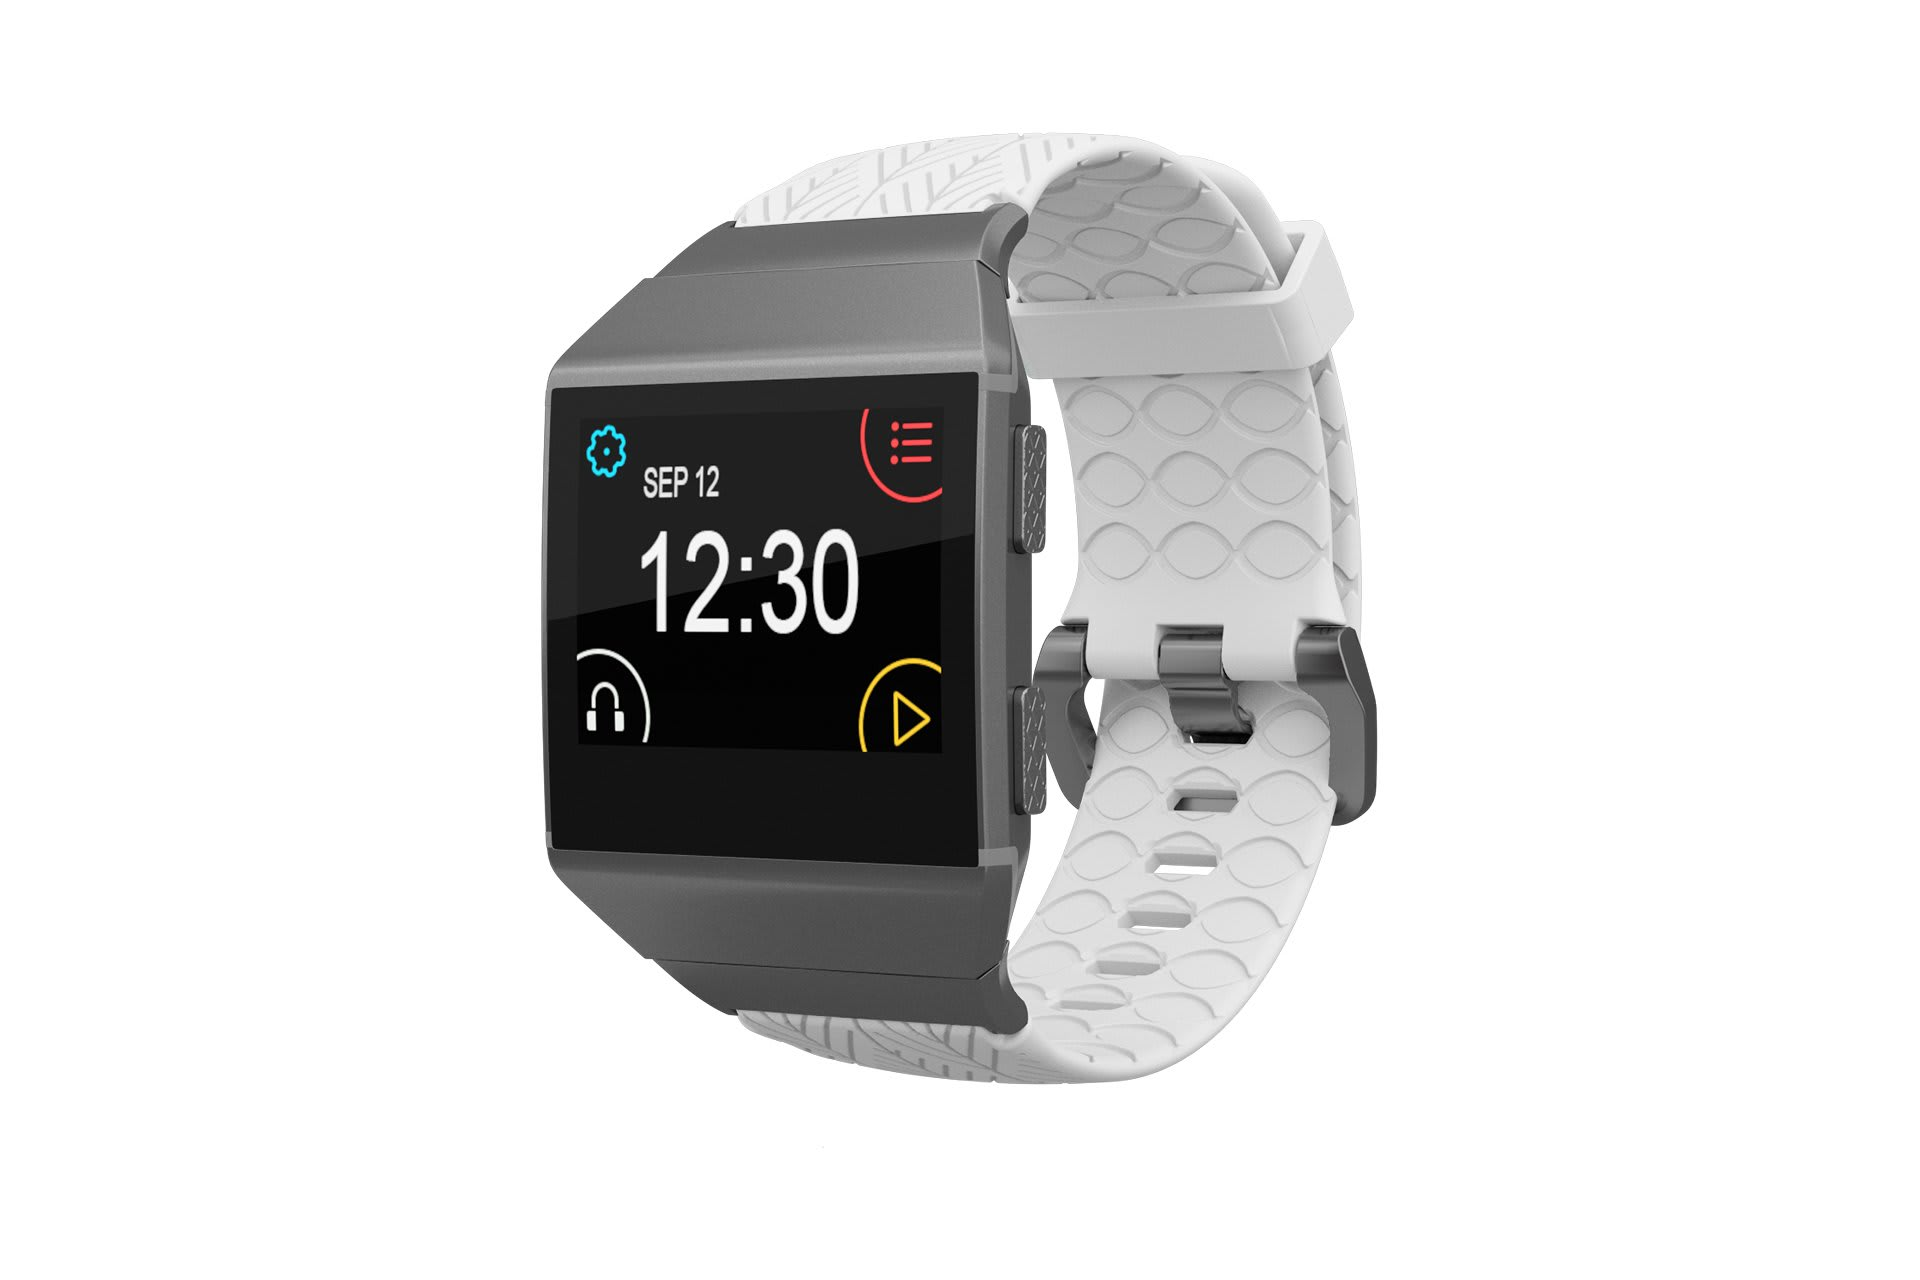 Fitbit Watch Band Ionic Dimension Arrows White with silver hardware viewed front on